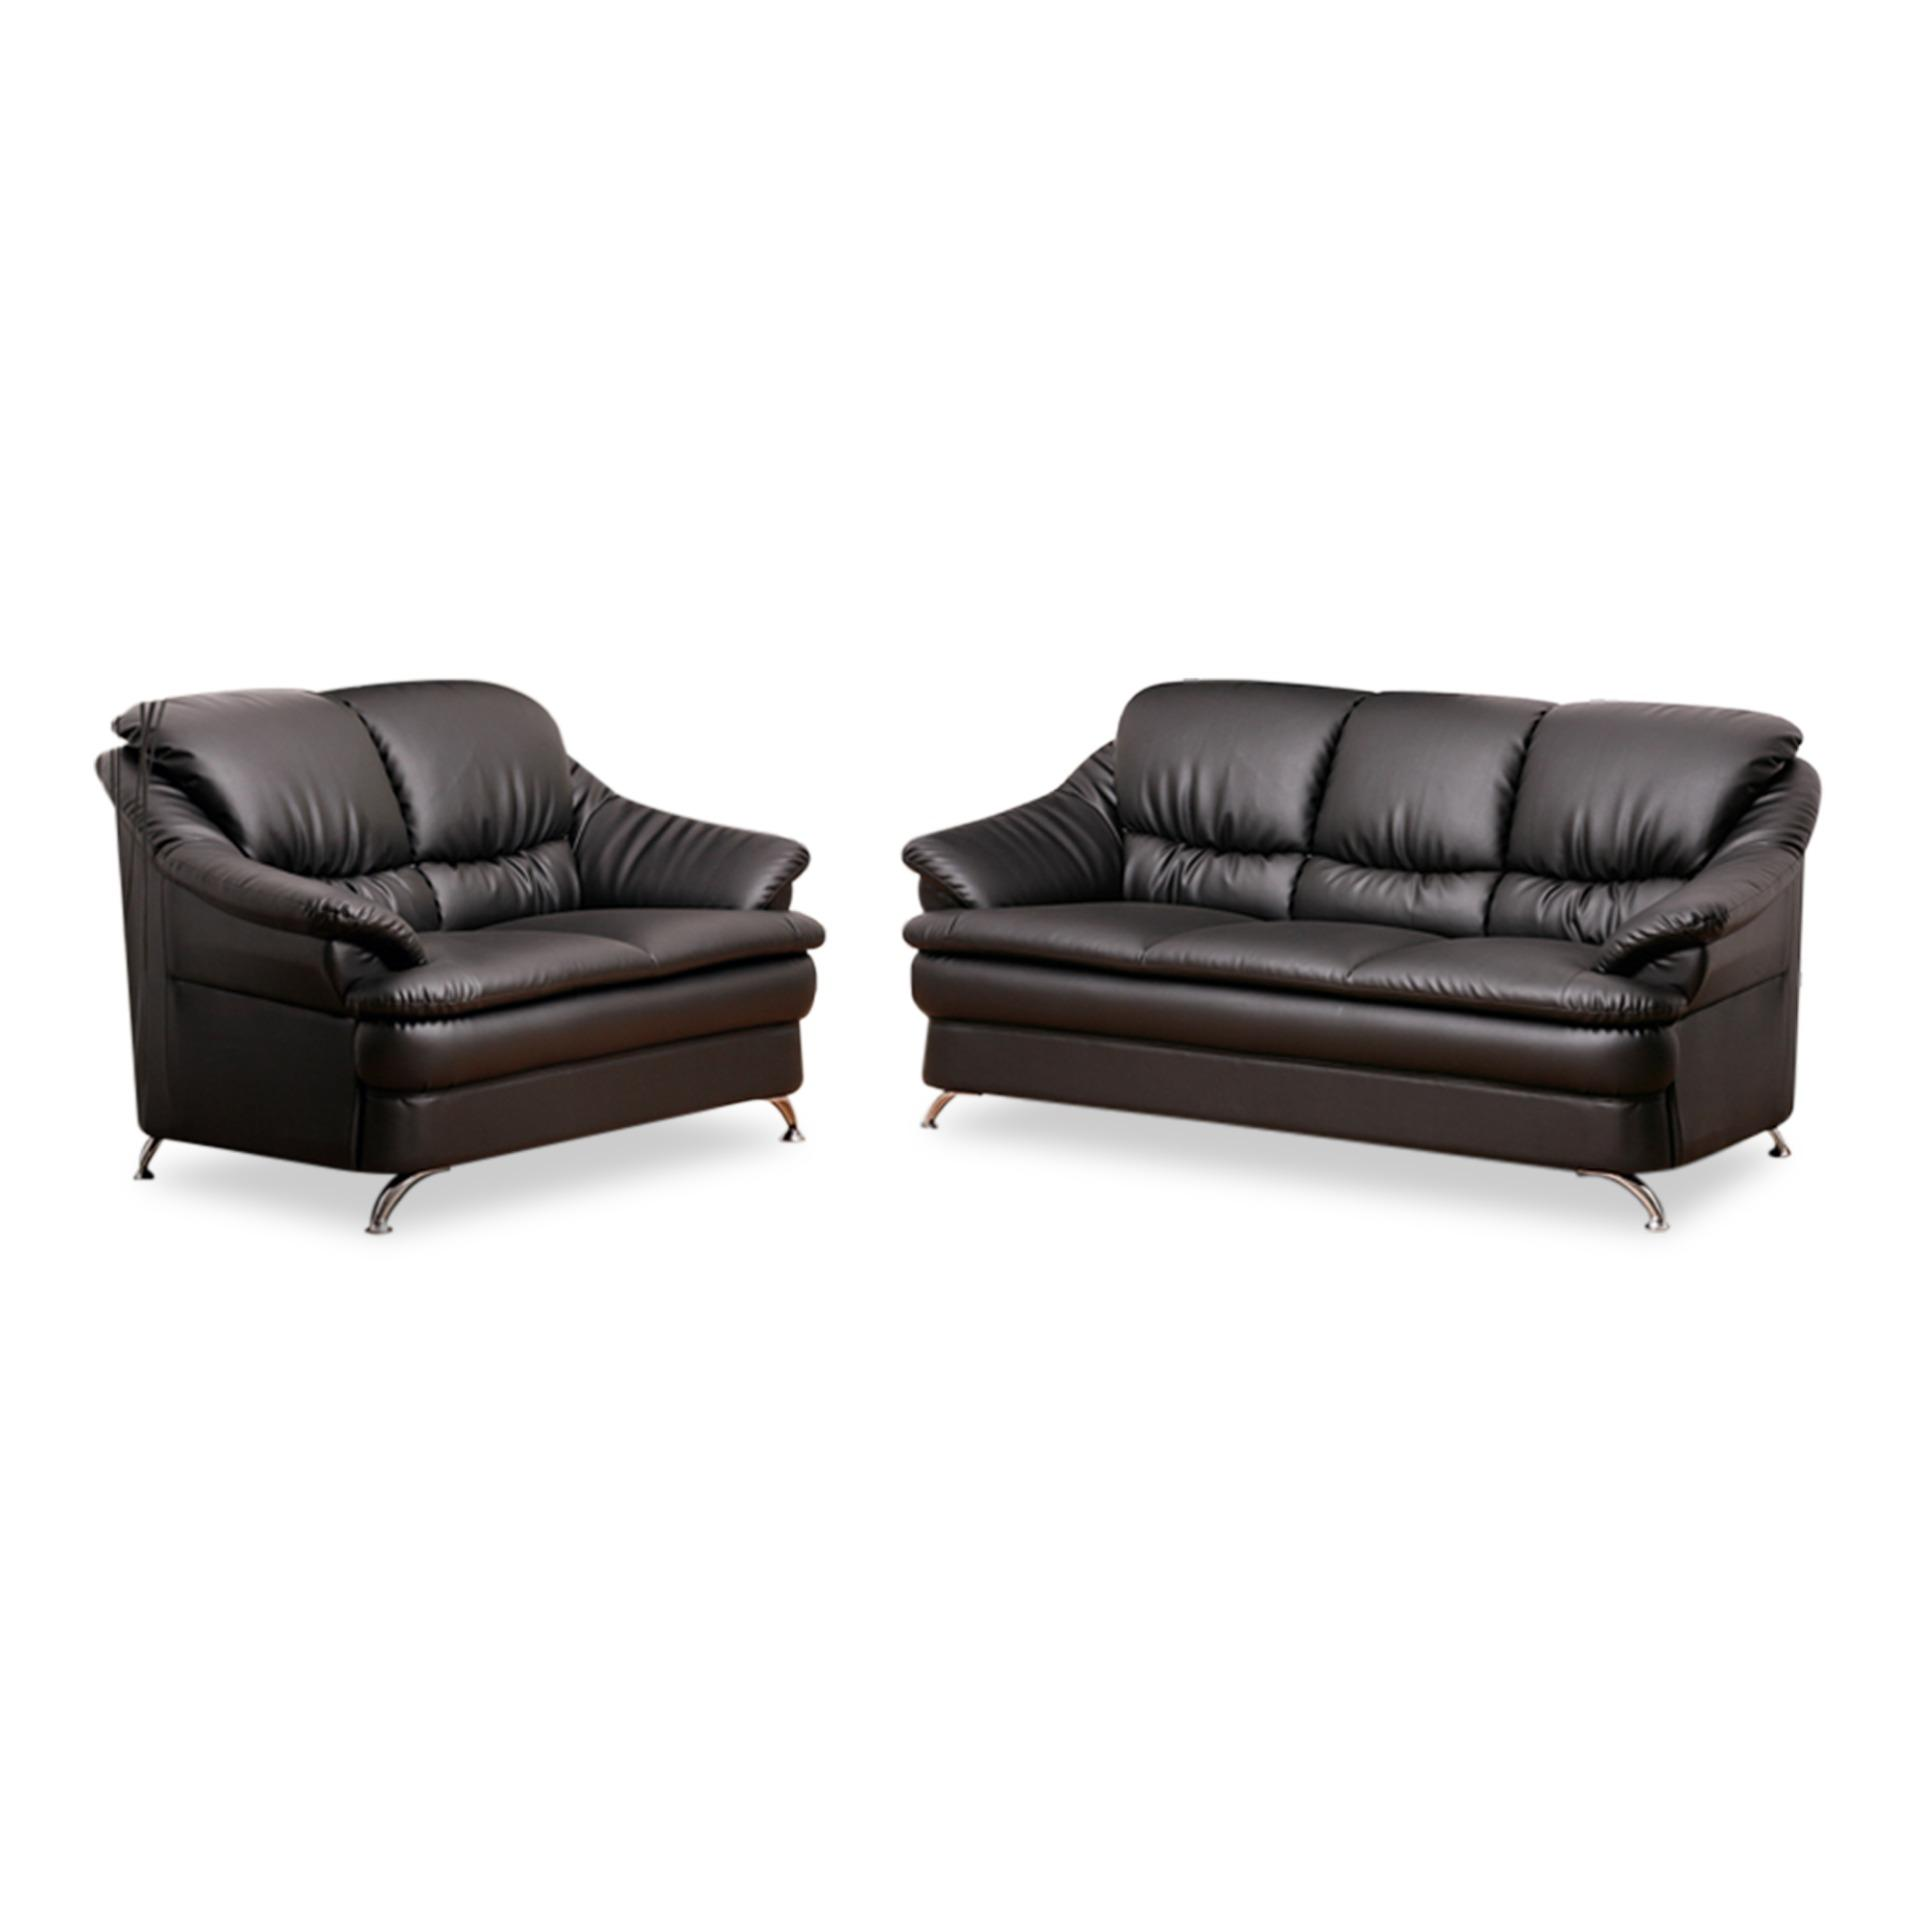 Ana PVC 3+2 Seater Sofa (FREE DELIVERY)(FREE ASSEMBLY)